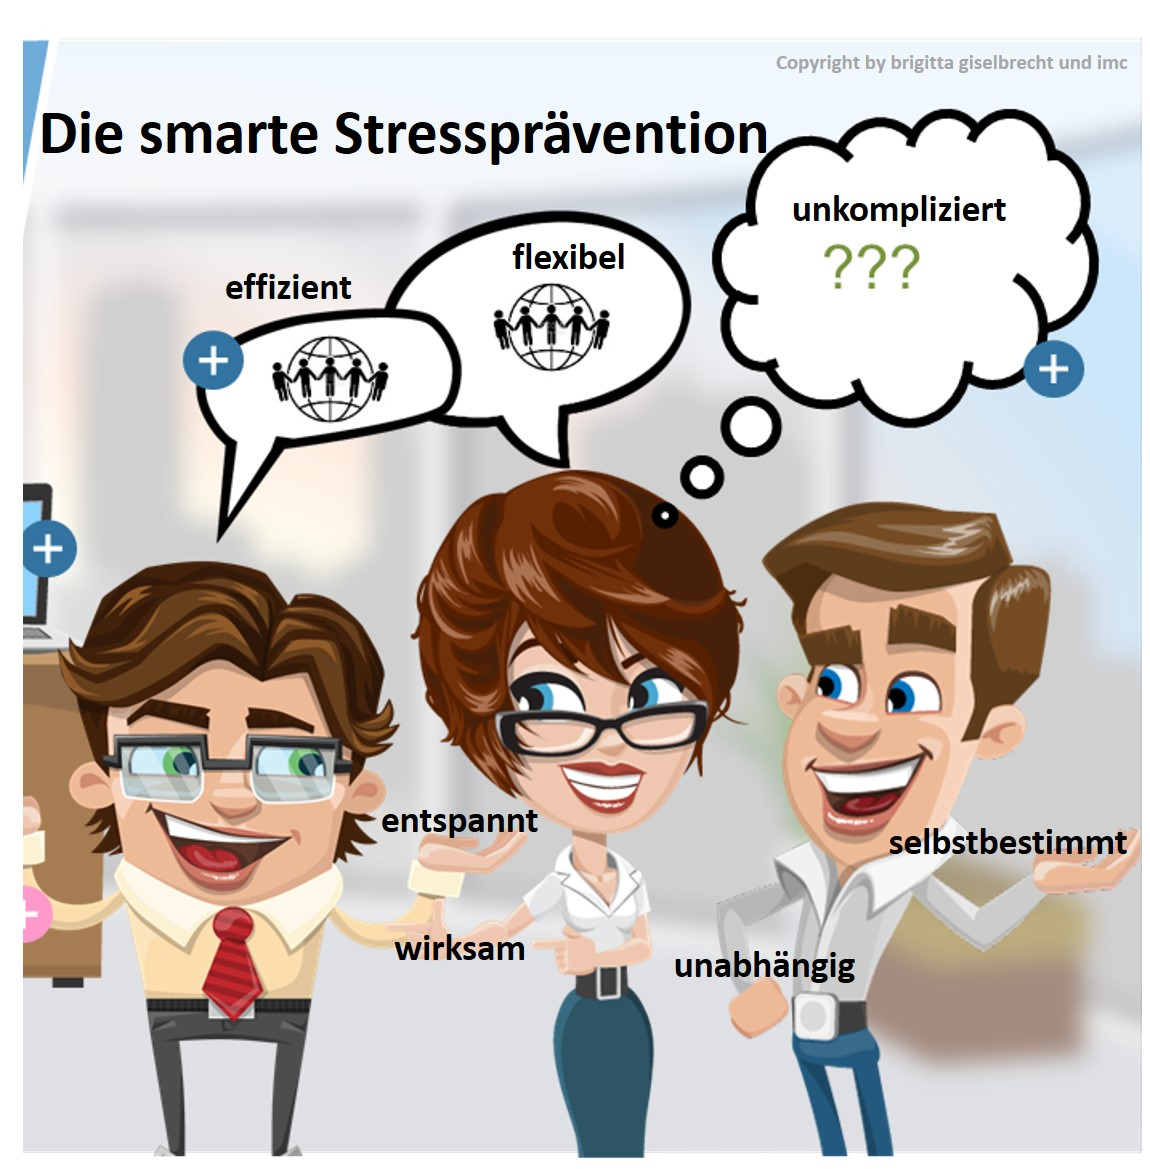 Stressprävention